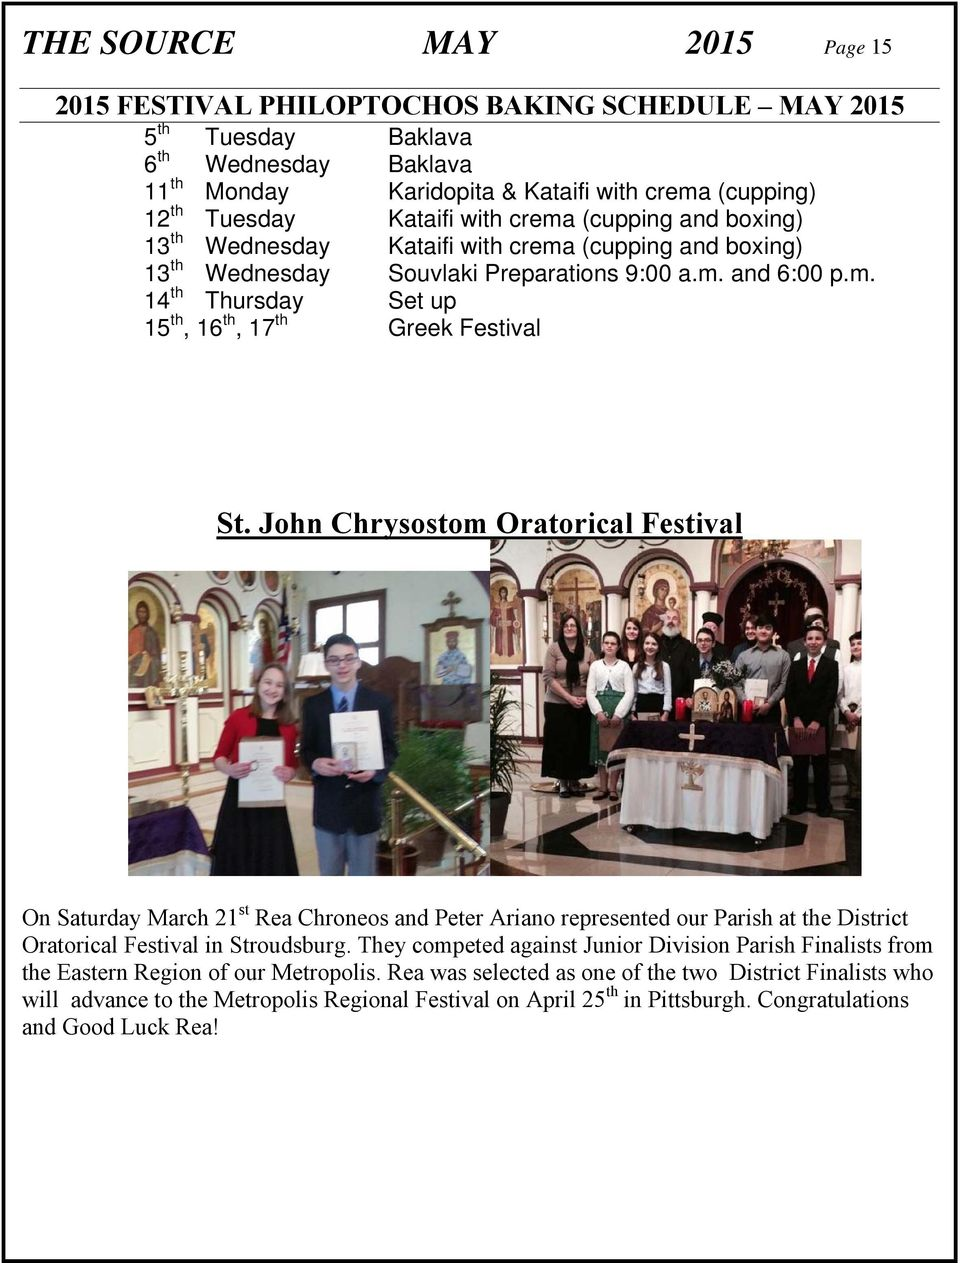 John Chrysostom Oratorical Festival On Saturday March 21 st Rea Chroneos and Peter Ariano represented our Parish at the District Oratorical Festival in Stroudsburg.